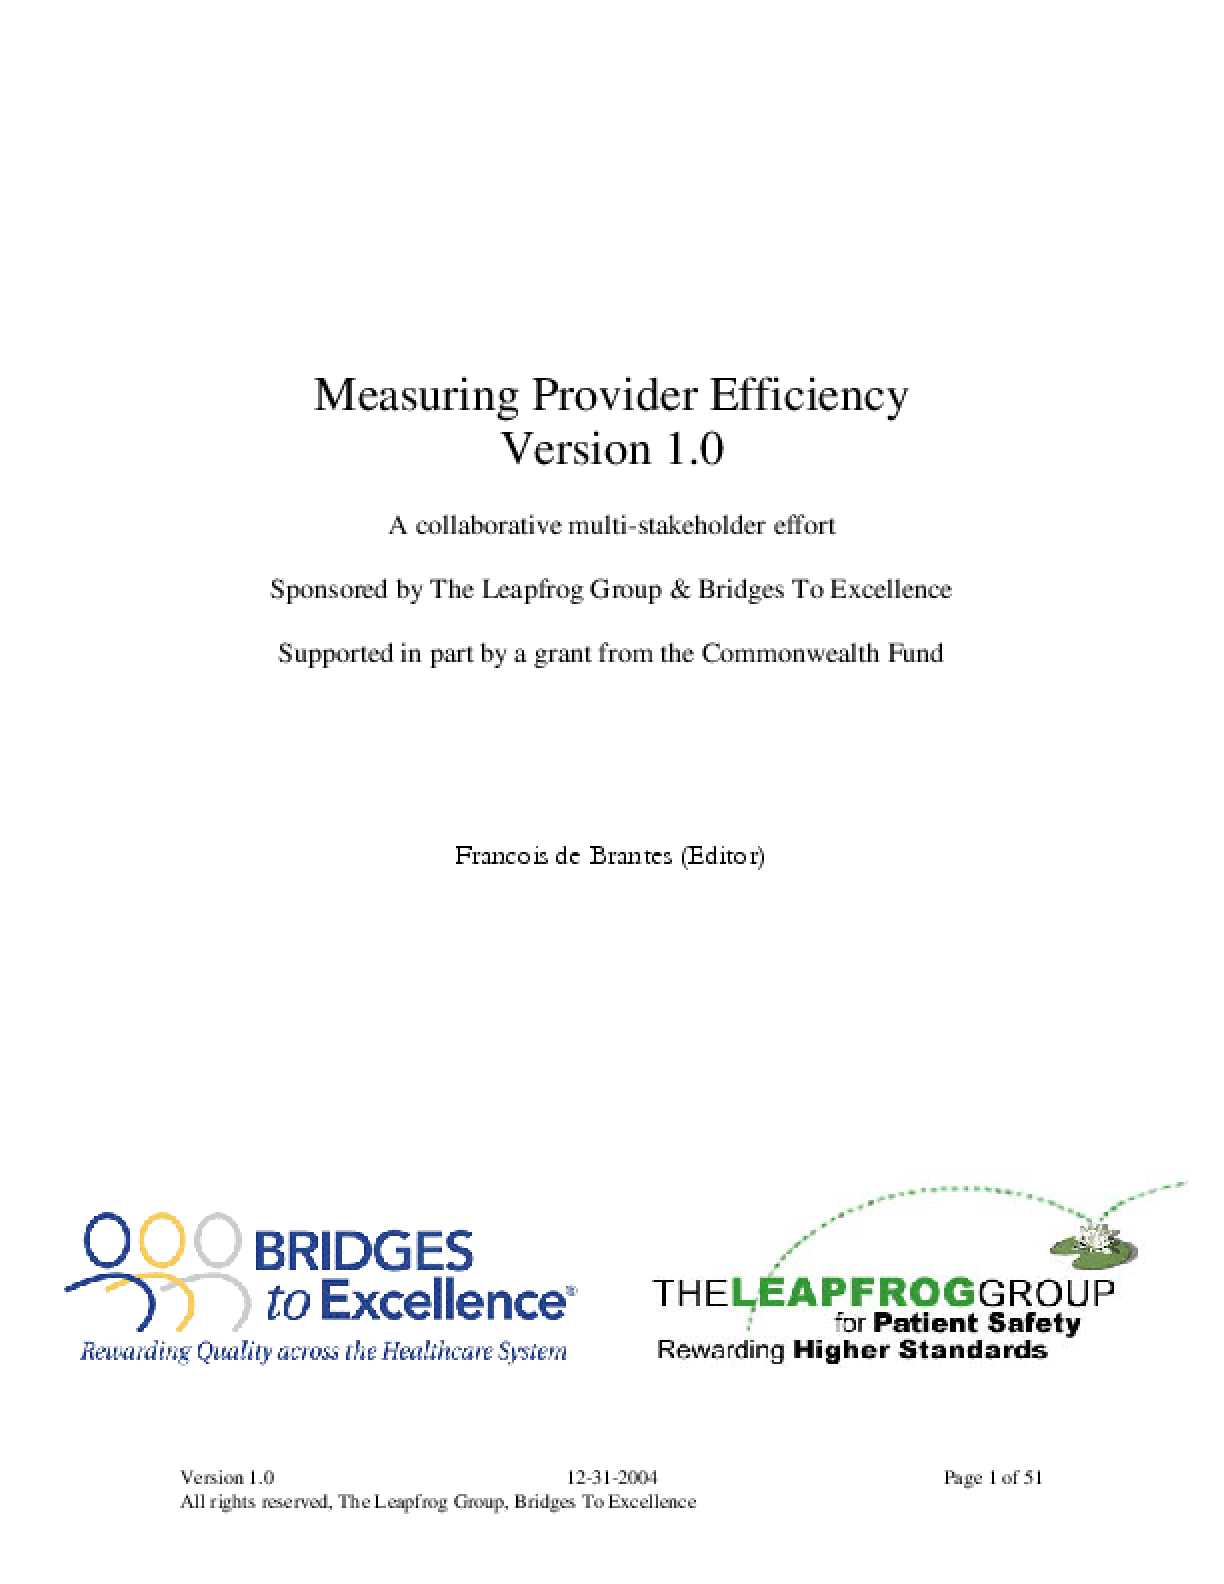 Measuring Provider Efficiency, Version 1.0, A Collaborative Multi-Stakeholder Effort